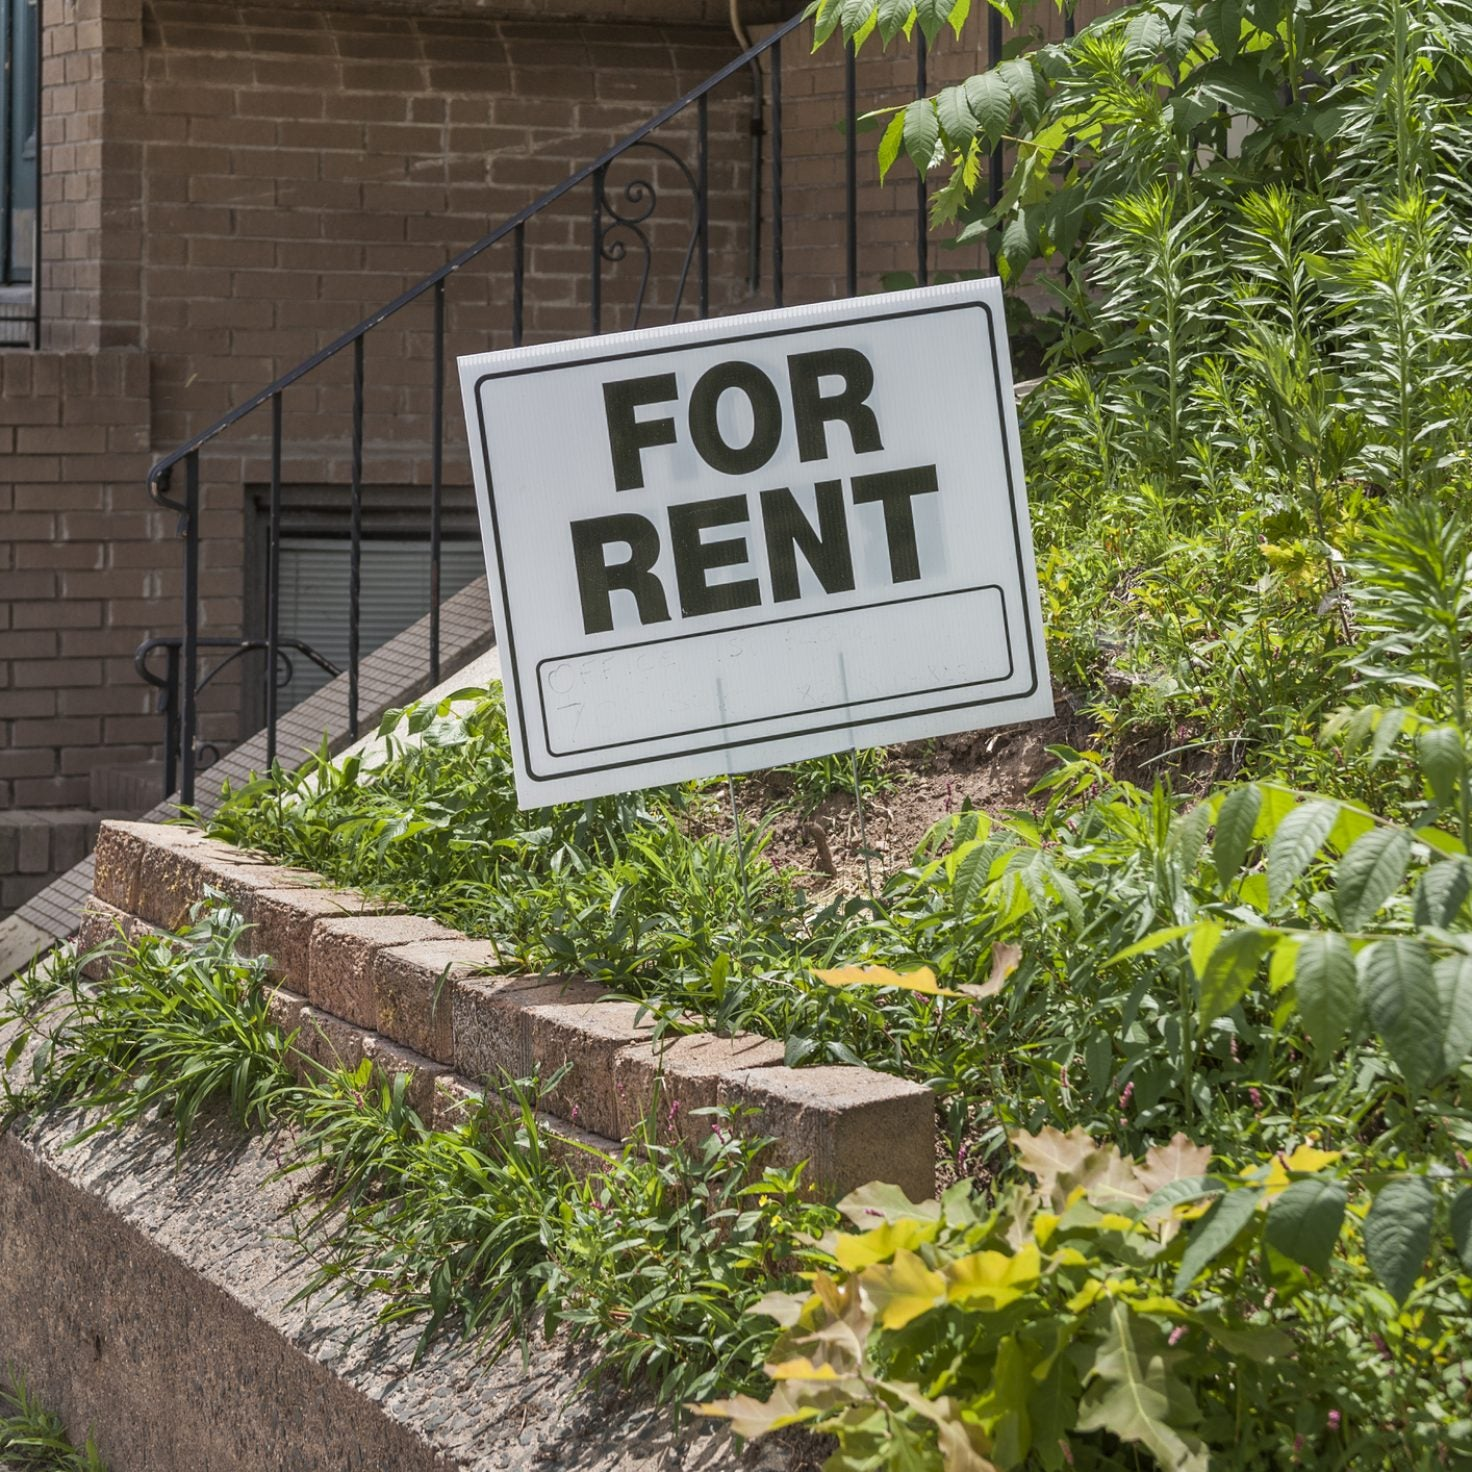 Rent Relief: Why I've Helped Give Money To Over 1,300 People During COVID-19